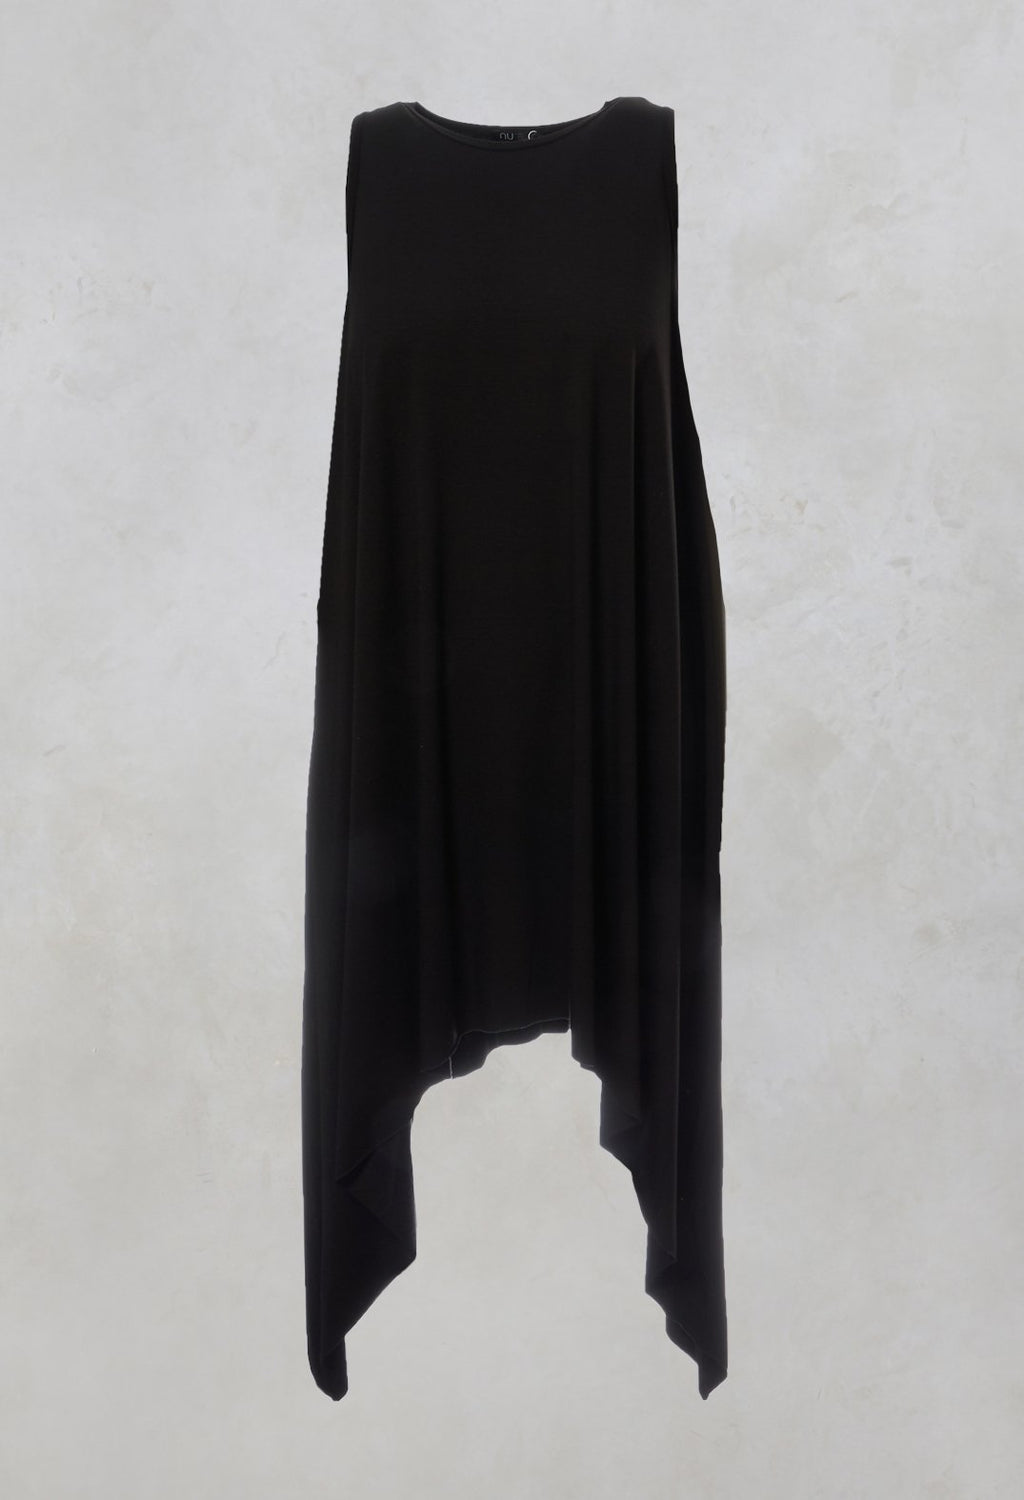 Sleeveless Asymmetric Dress in Black